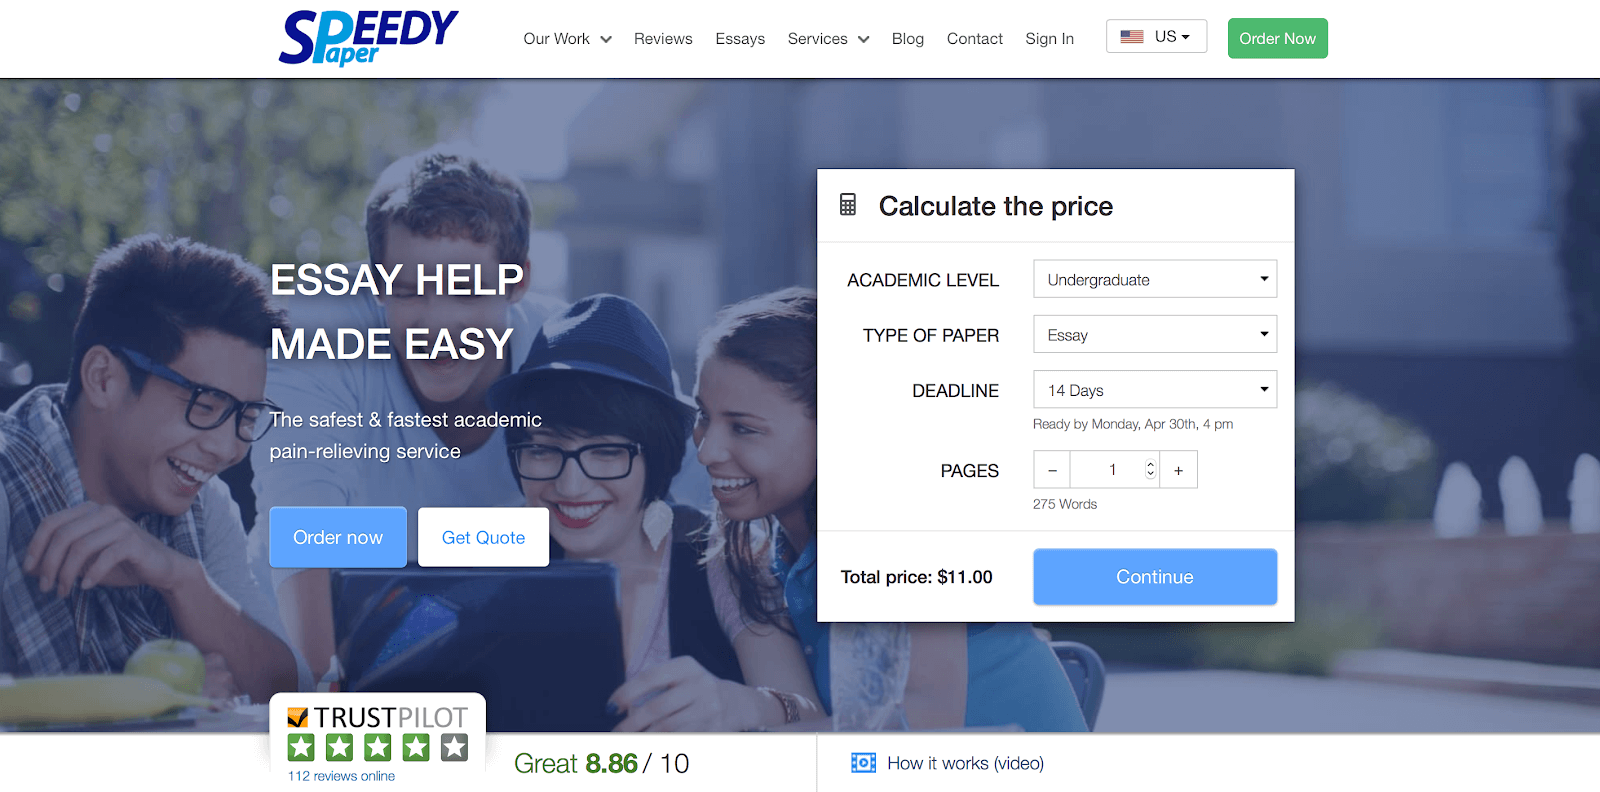 speedypaper home page